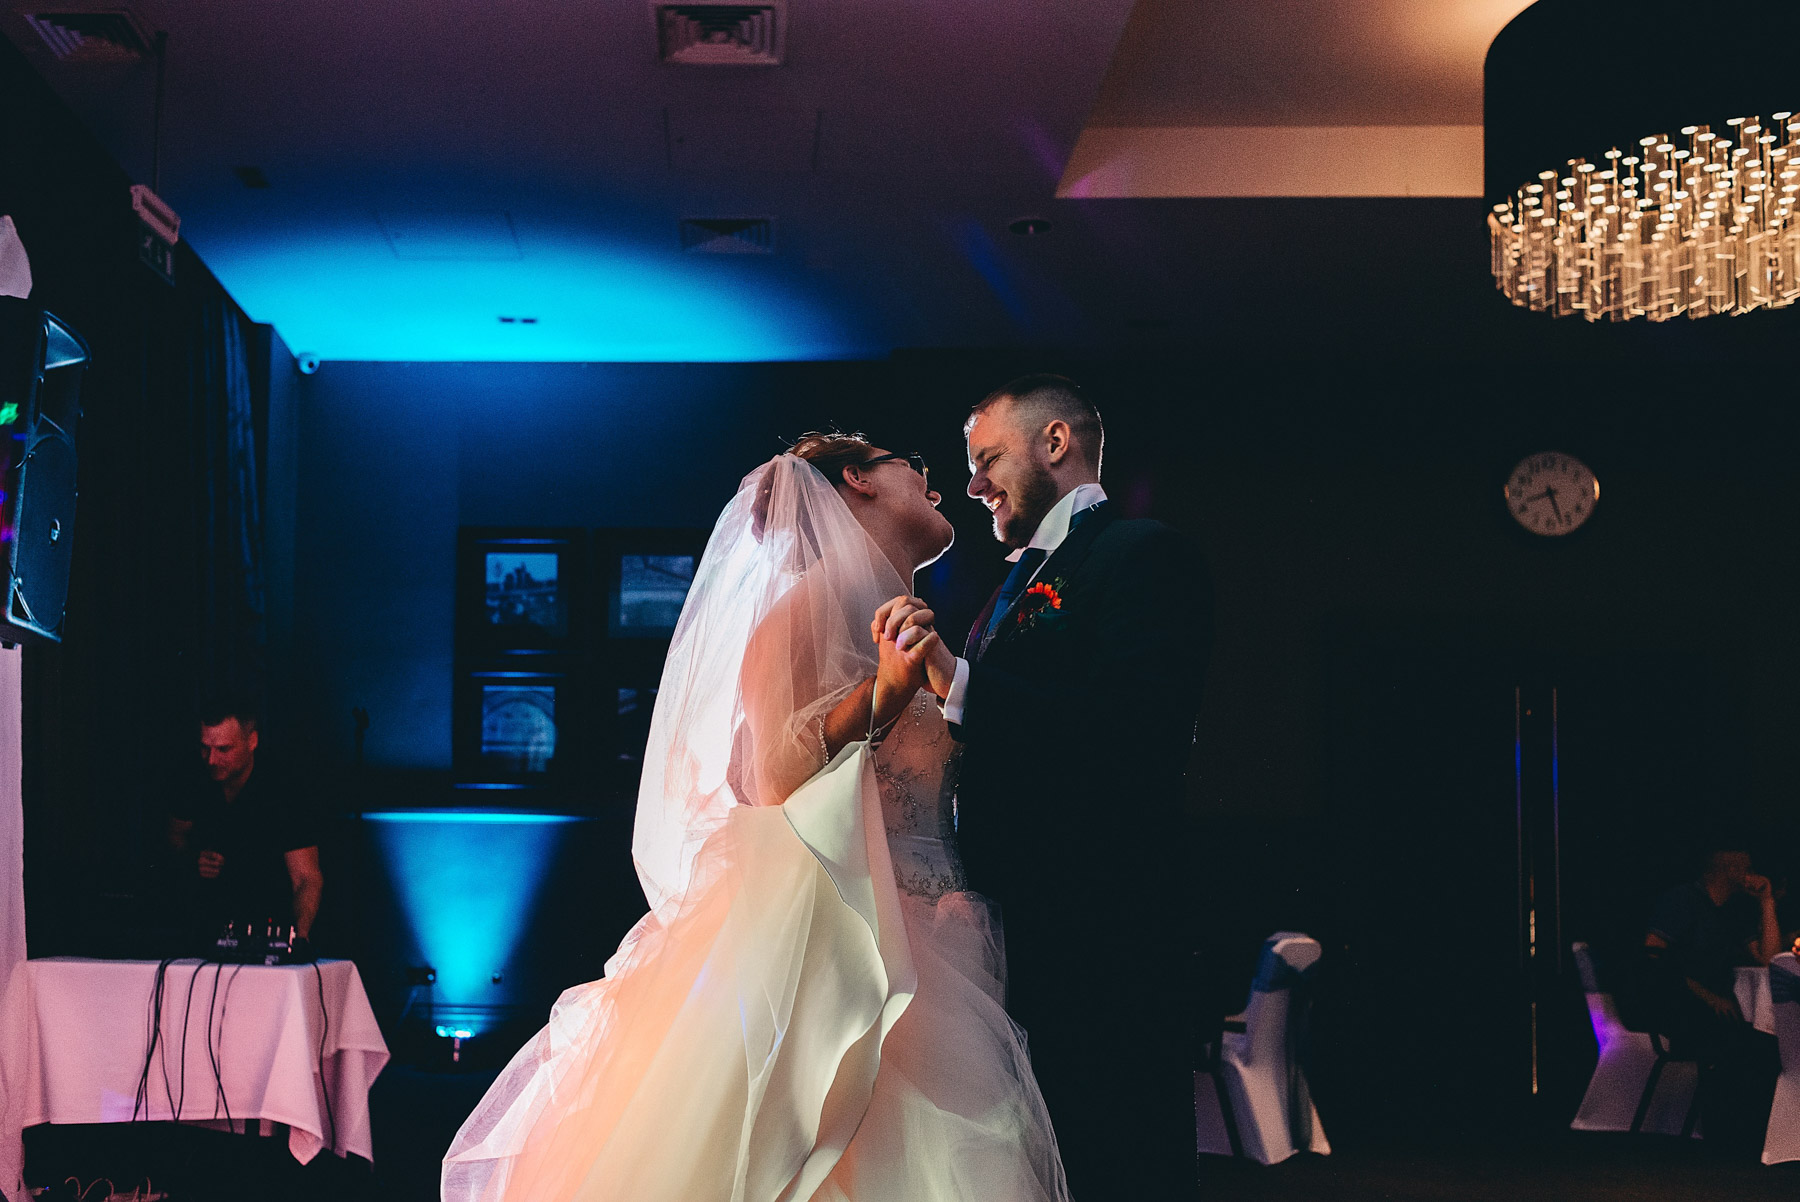 Bride and groom dance with light behind them